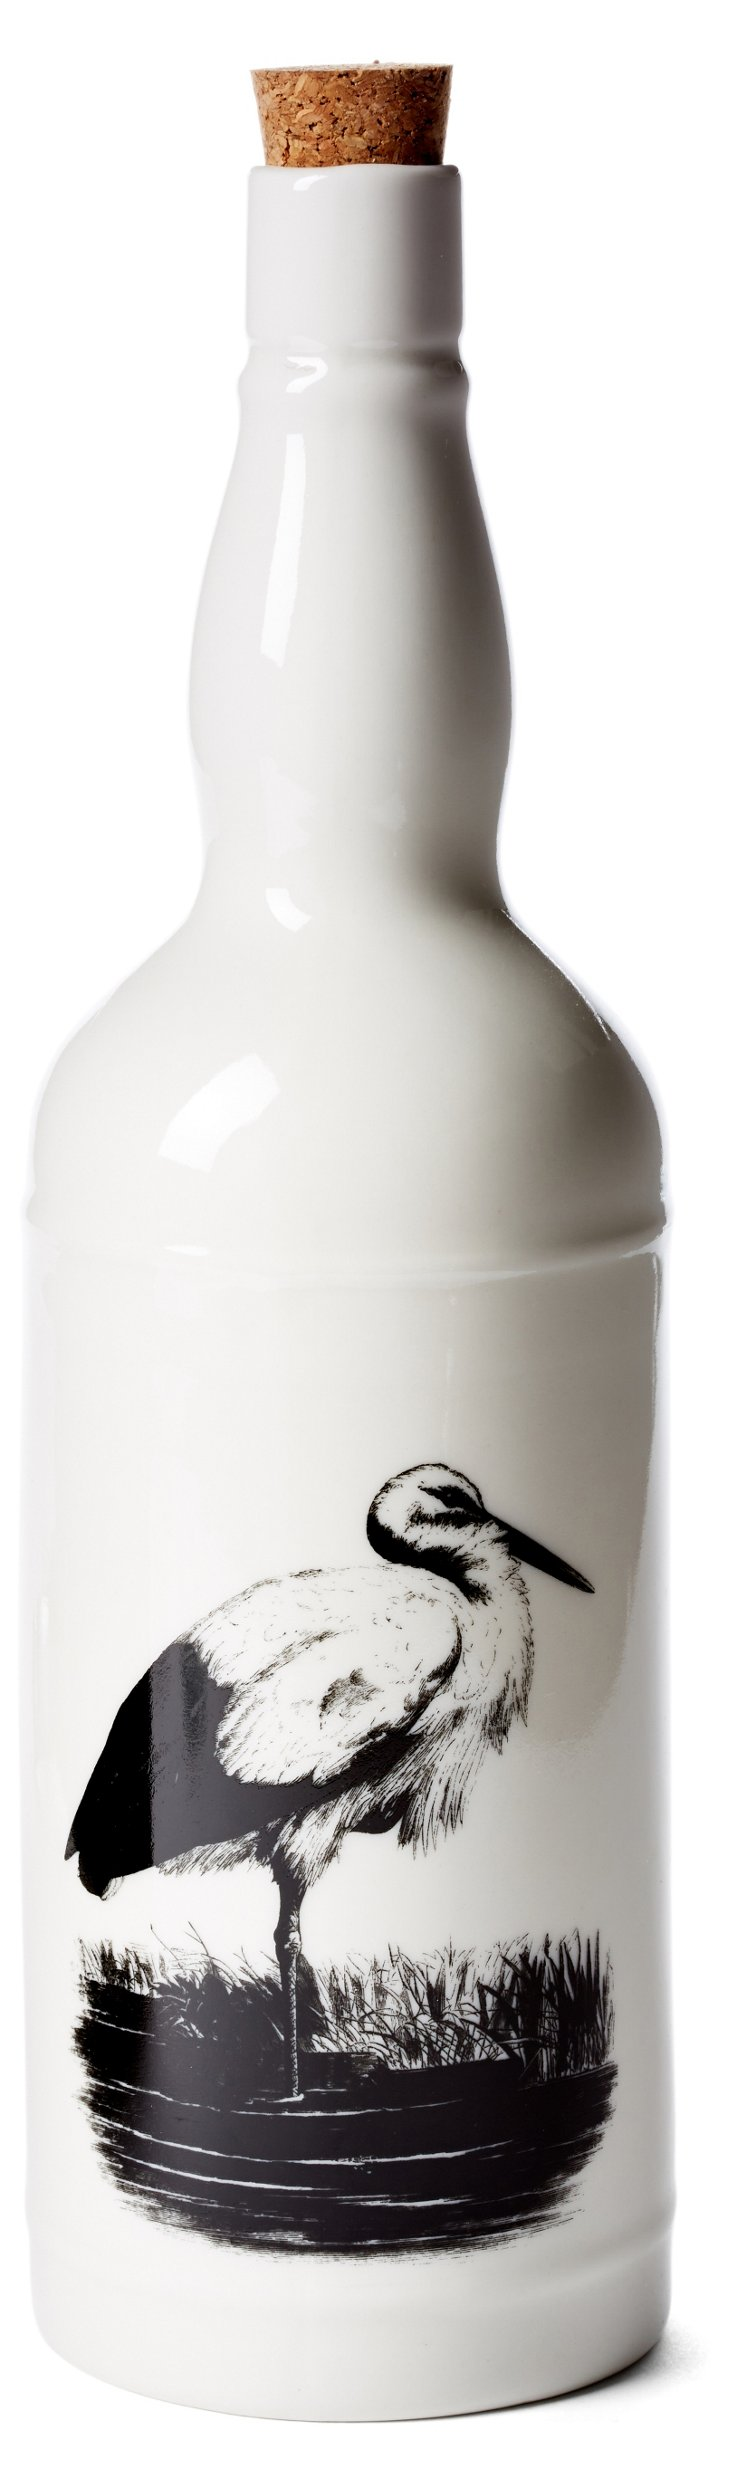 "11"" Stoneware Bottle w/ Stork, White"